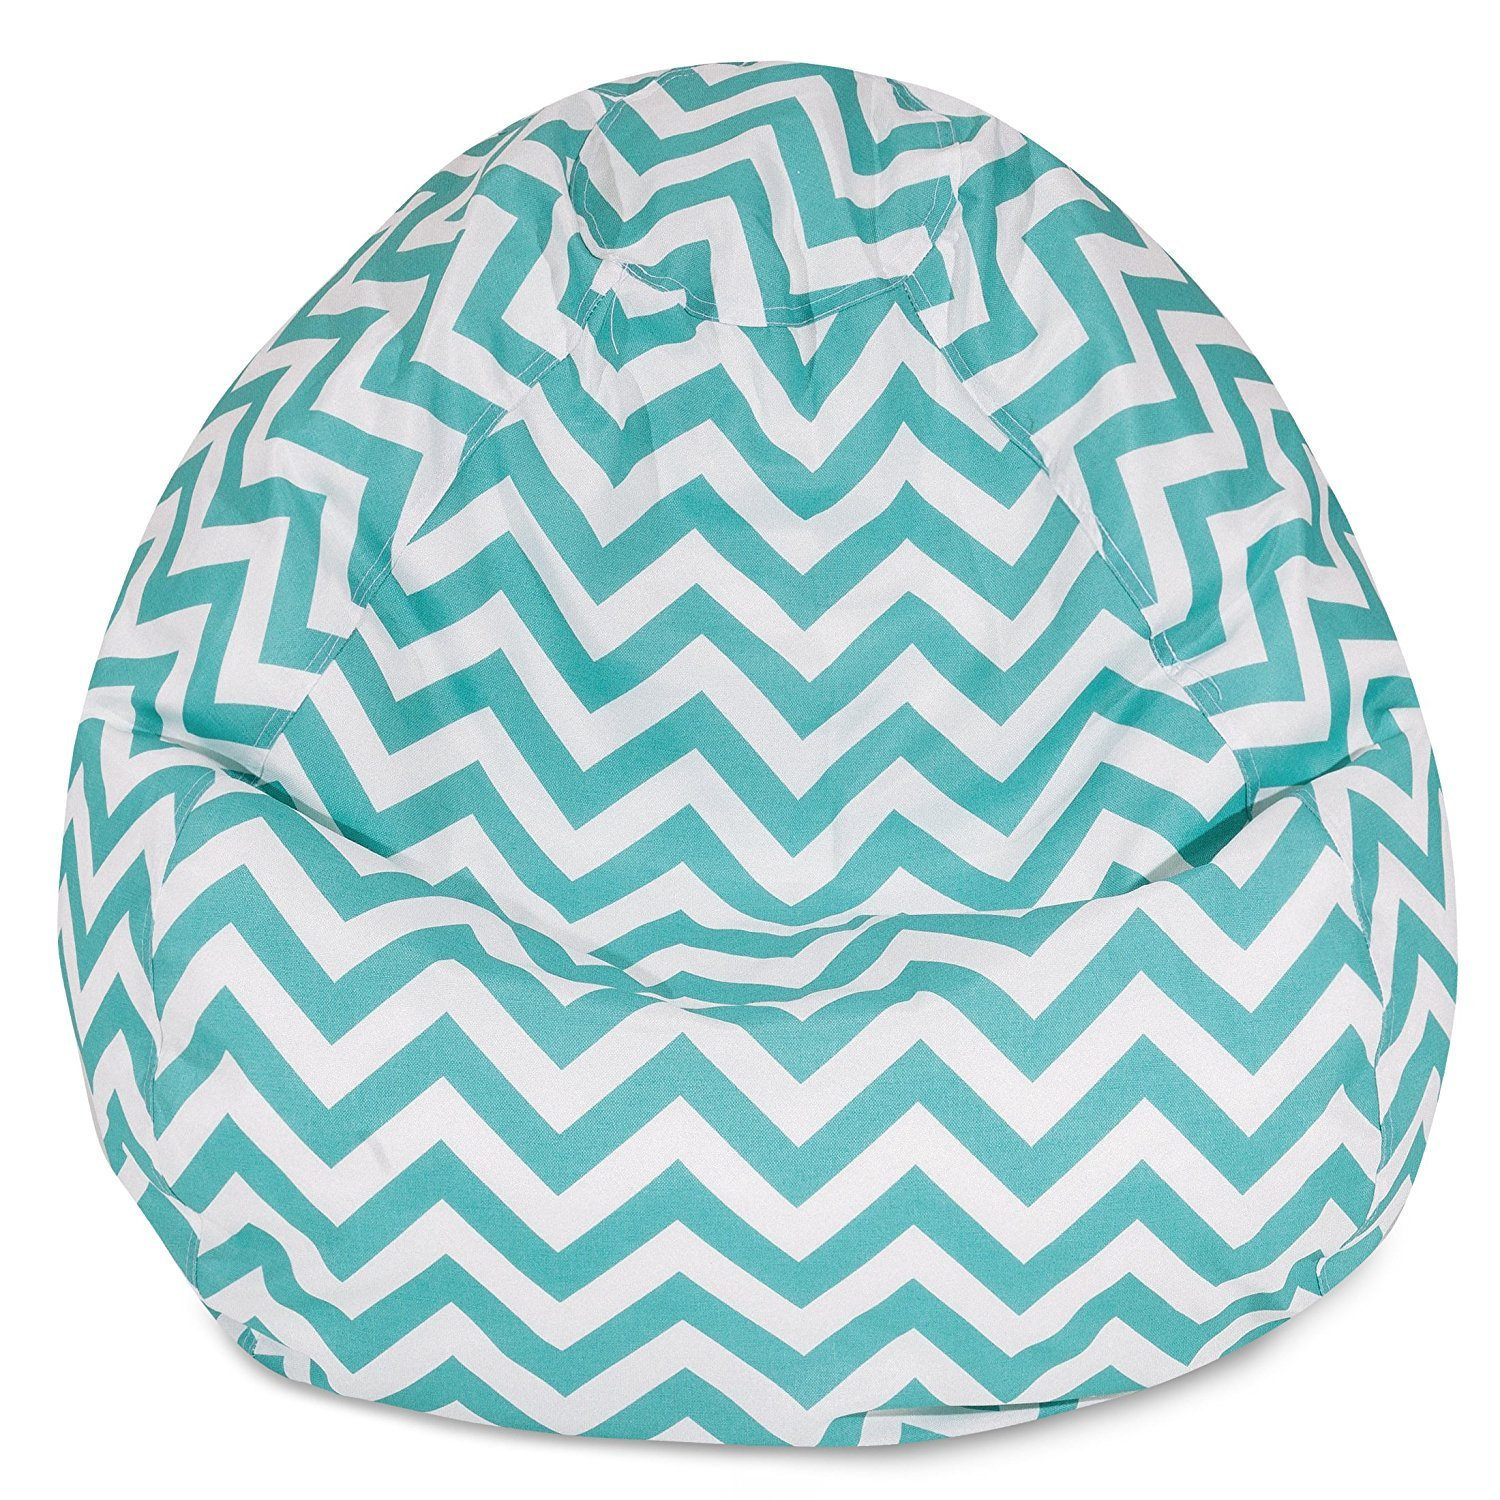 Amazon.com : Majestic Home Goods Classic Bean Bag Chair   Chevron Giant  Classic Bean Bags For Small Adults And Kids (28 X 28 X 22 Inches) (Teal  Blue) ...